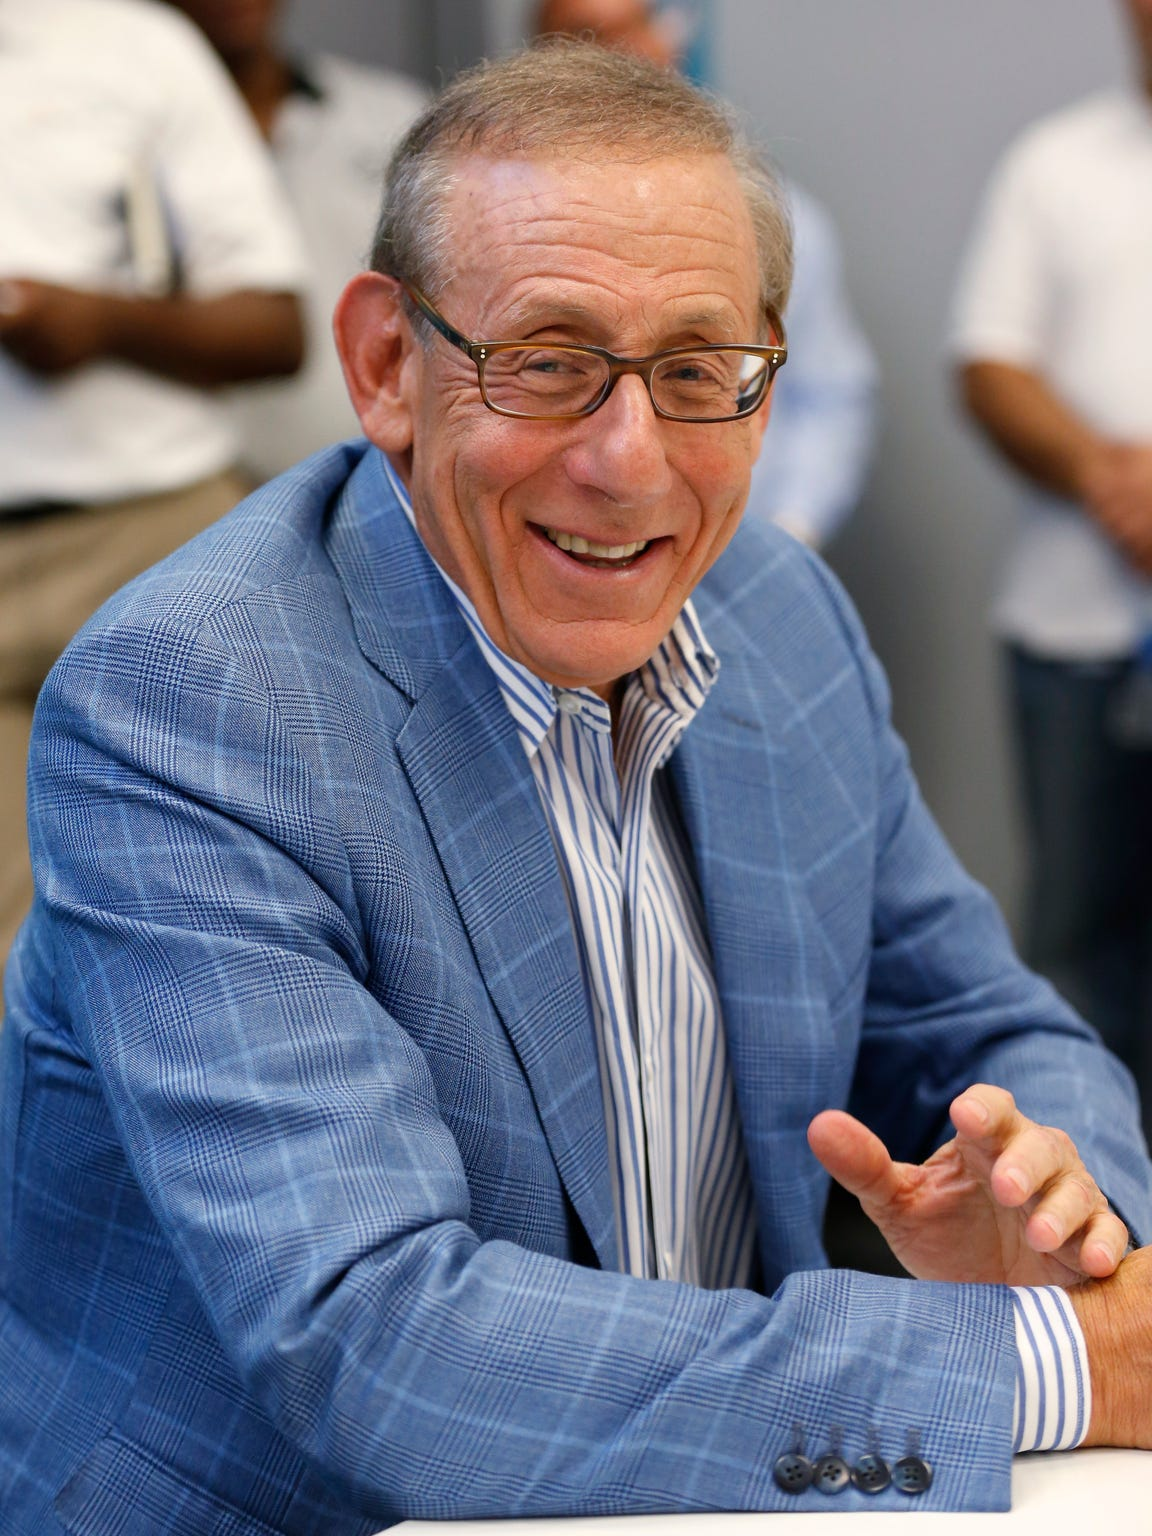 In this July 27, 2017, file photo, Miami Dolphins owner Stephen Ross, the University of Michigan's top individual alumni donor, speaks during a news conference at NFL football training camp in Davie, Fla.